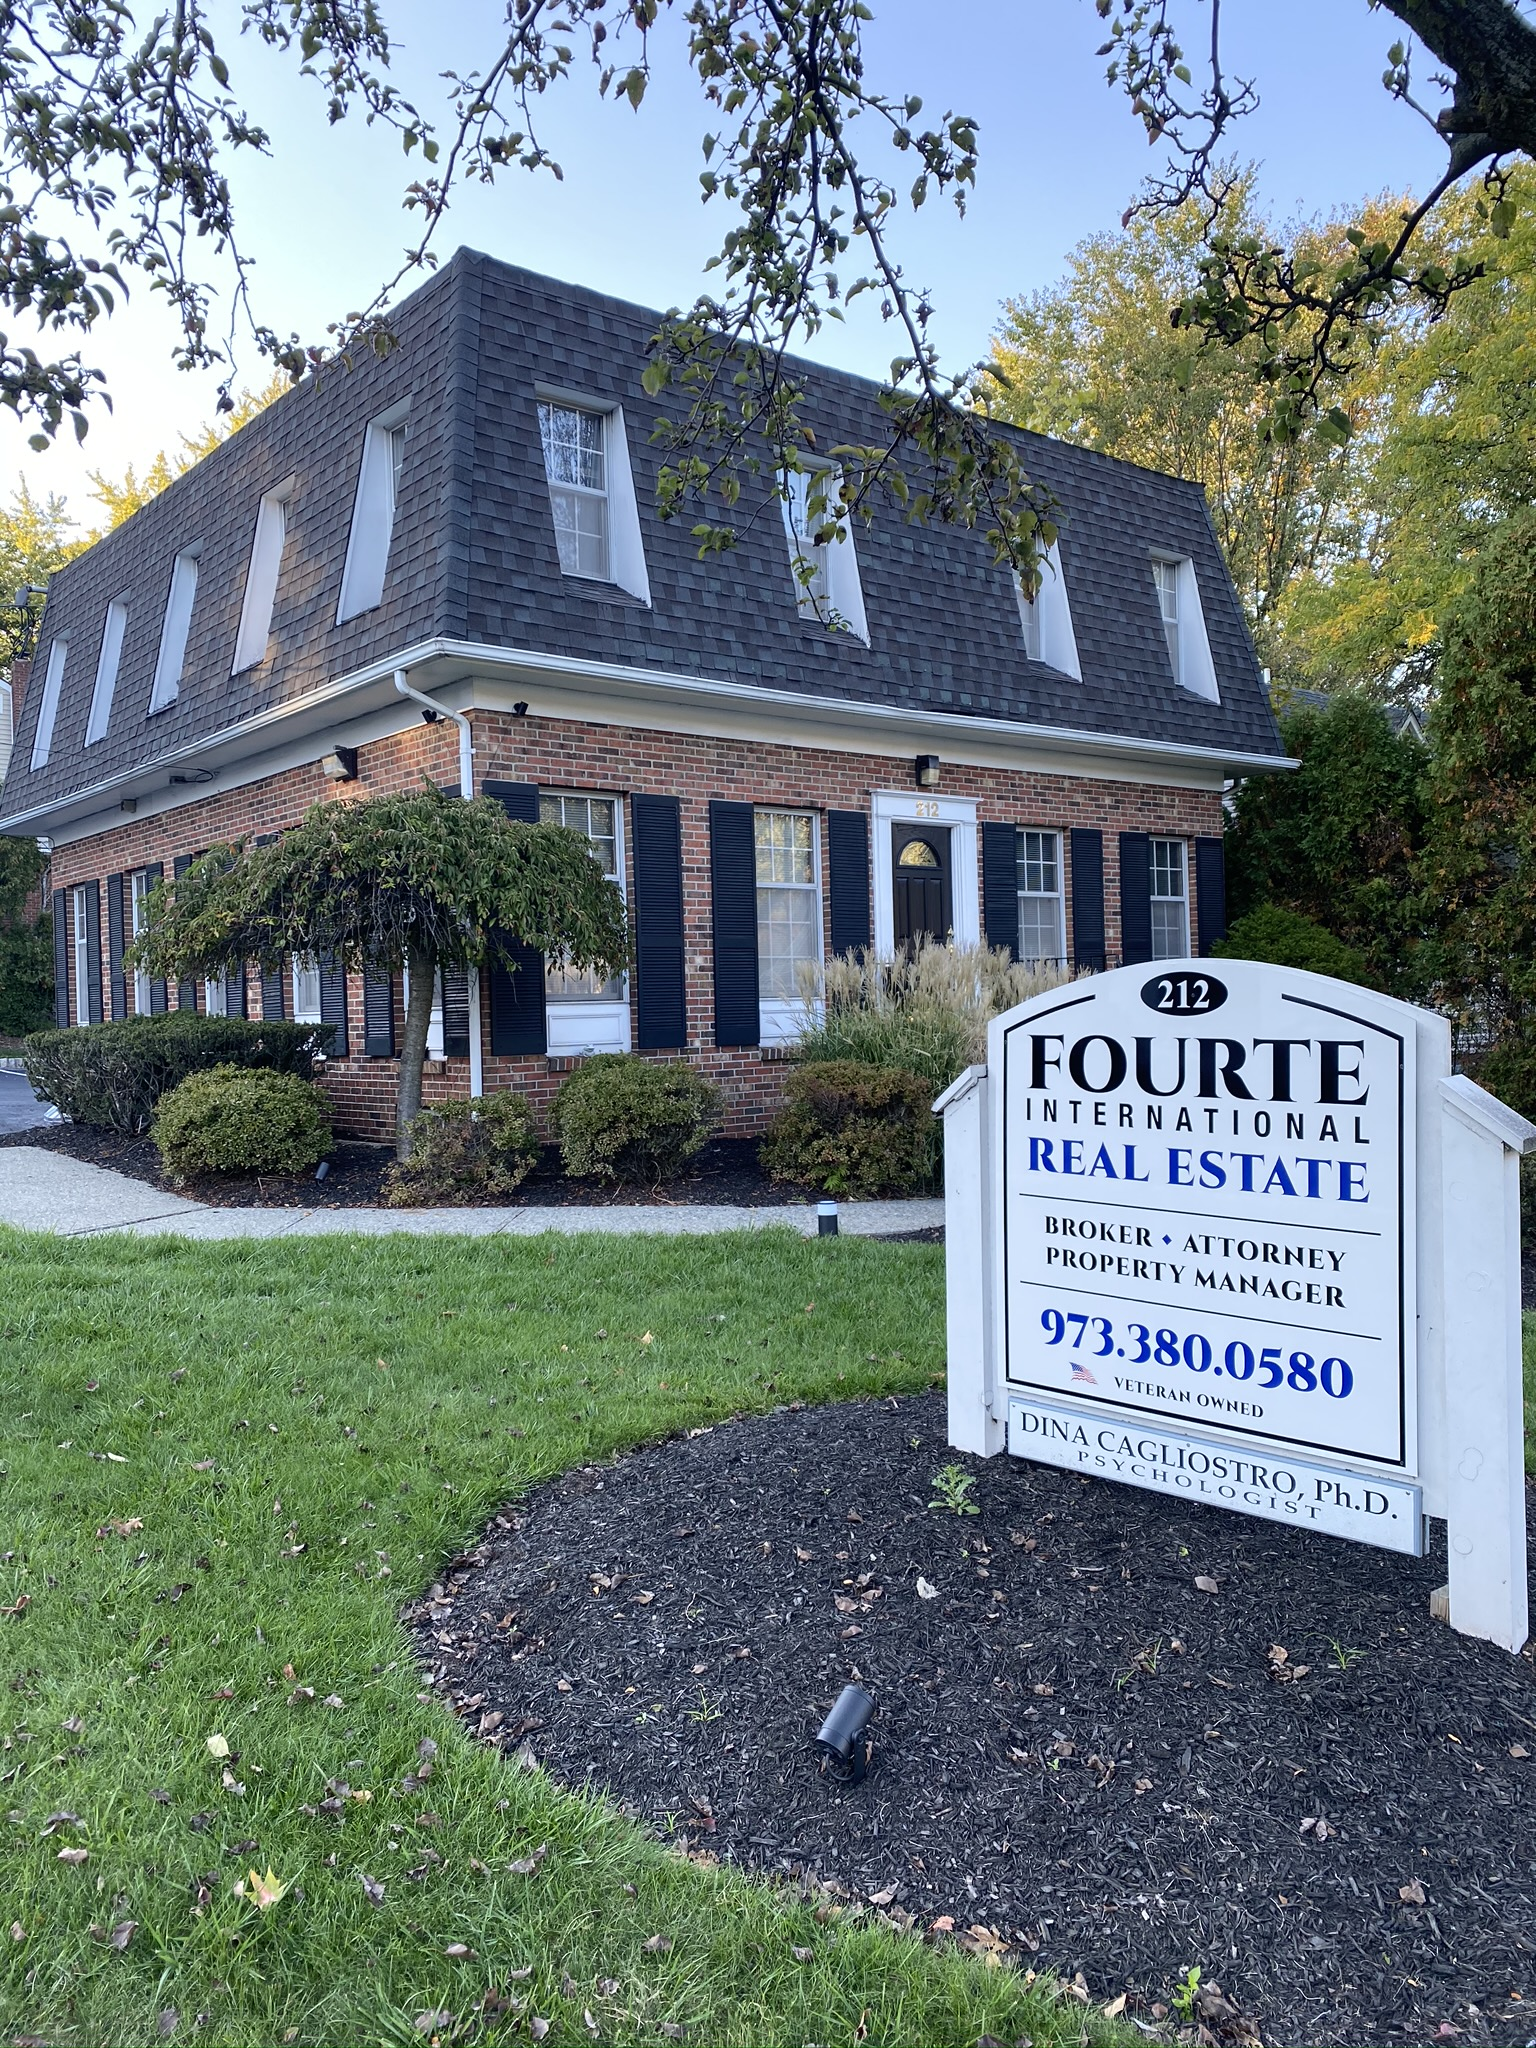 Fourte International Real Estate's Headquarters building in Essex County New Jersey with a sign on the front lawn advertising broker, attorney and property manager services